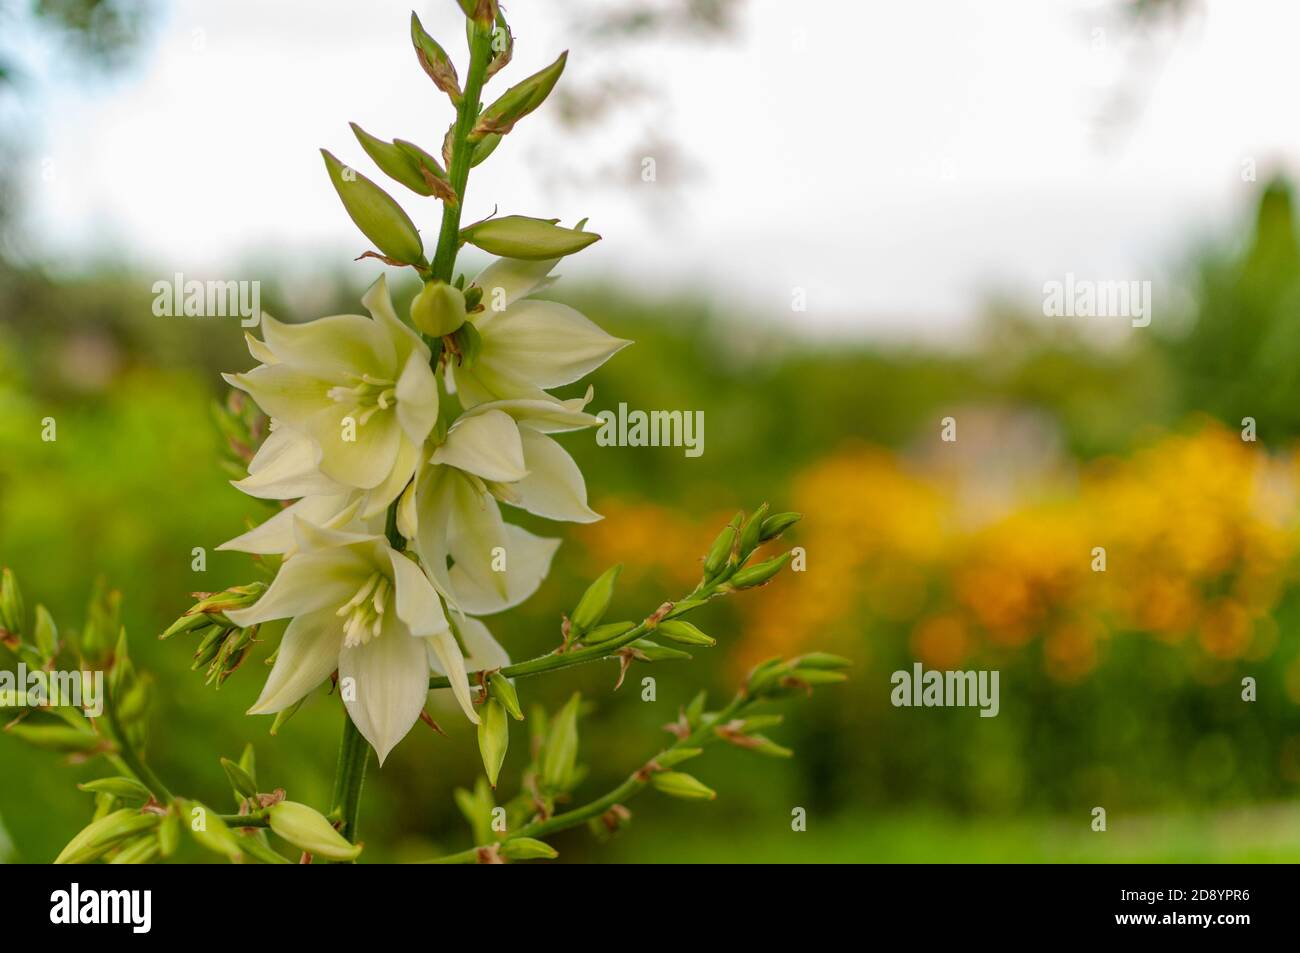 Page 3 Adams Needle Yucca High Resolution Stock Photography And Images Alamy